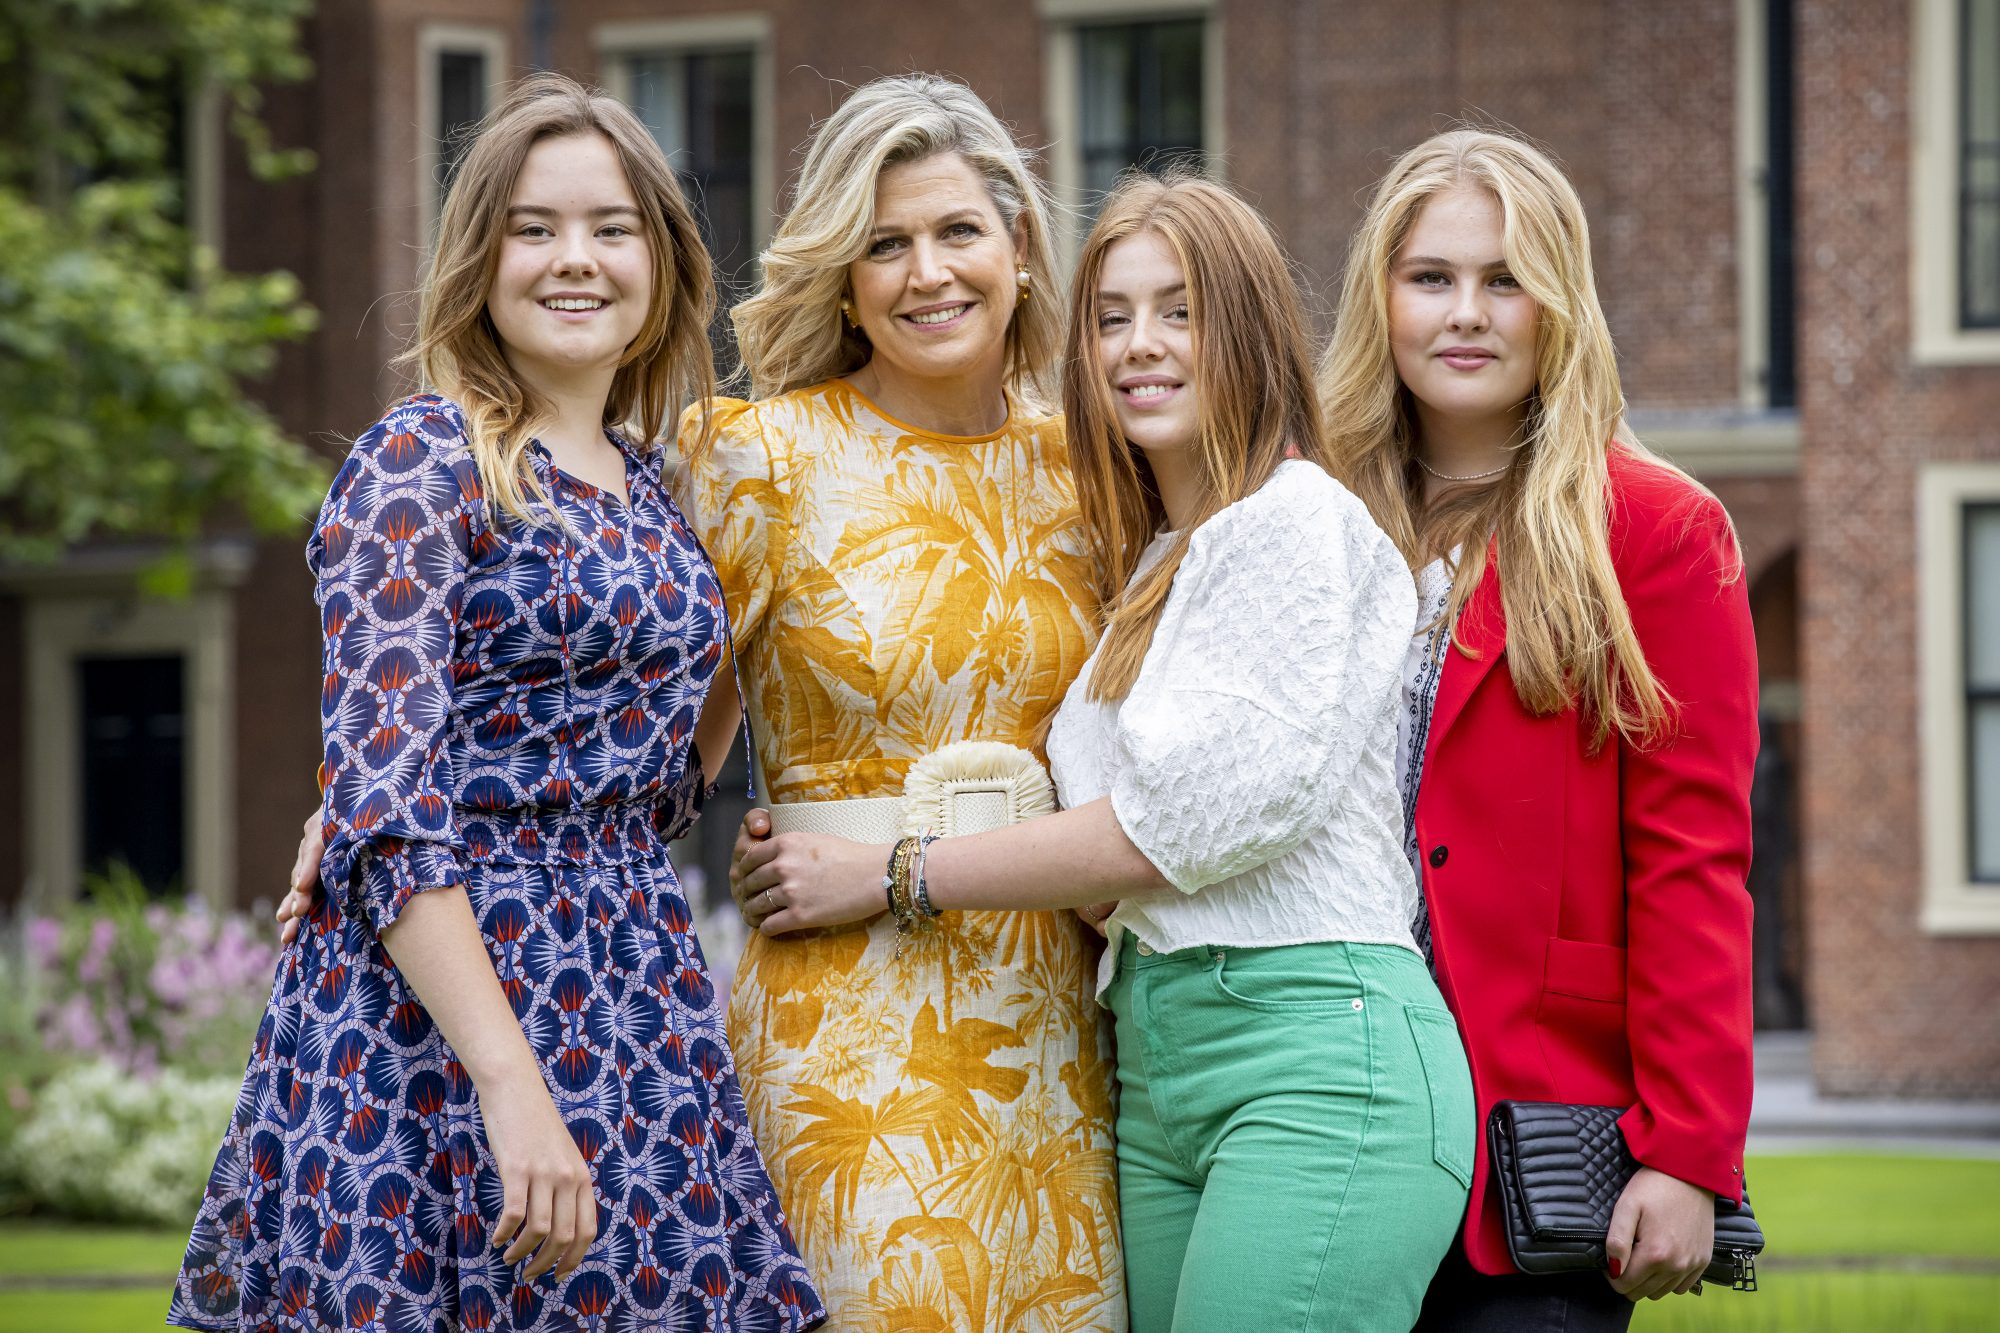 Queen Maxima of The Netherlands, Princess Amalia of The Netherlands, Princess Alexia of The Netherlands and Princess Ariane of The Netherlands